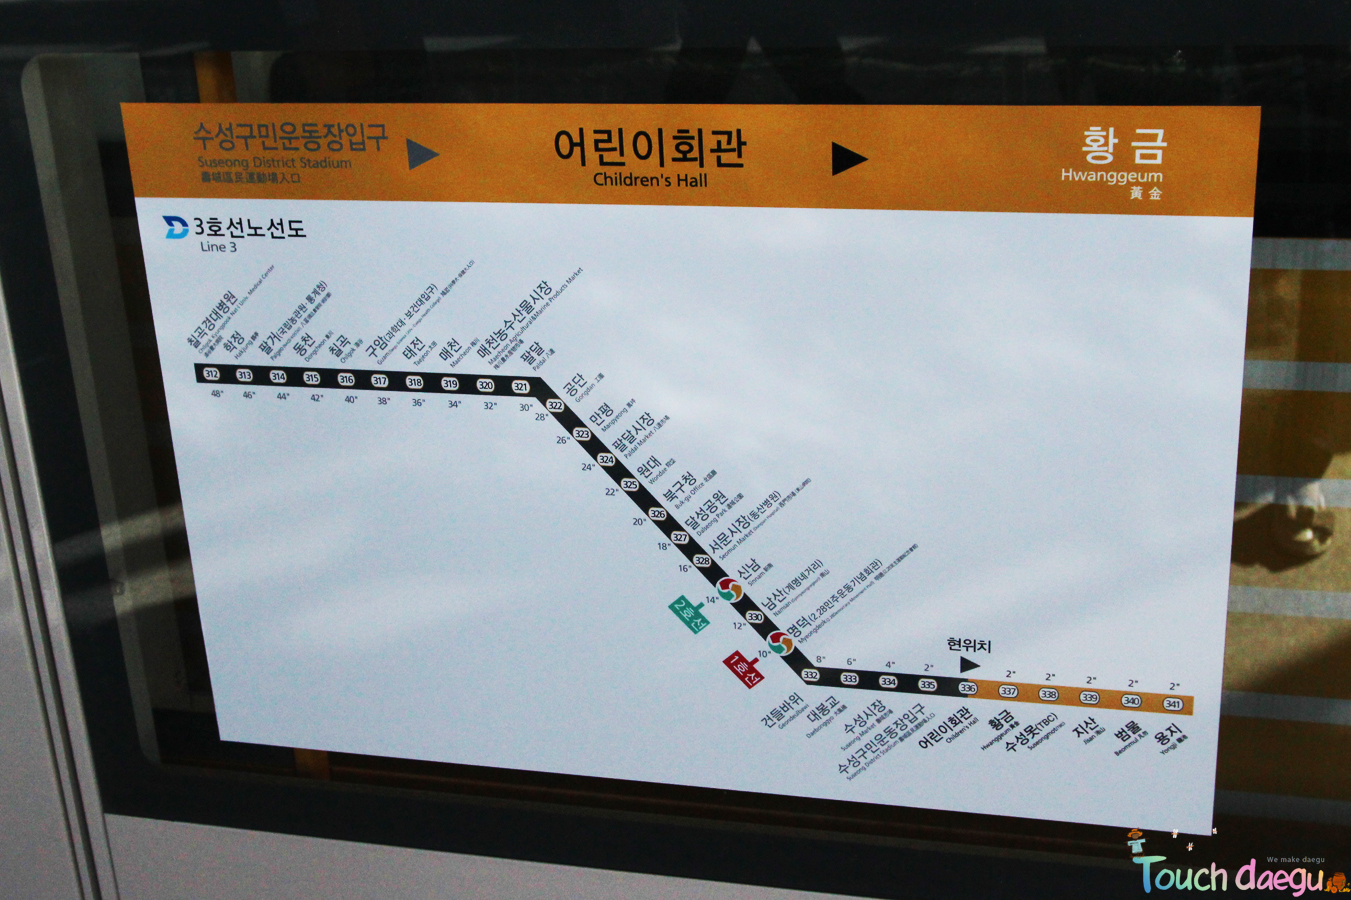 The route map of the monorail line 3